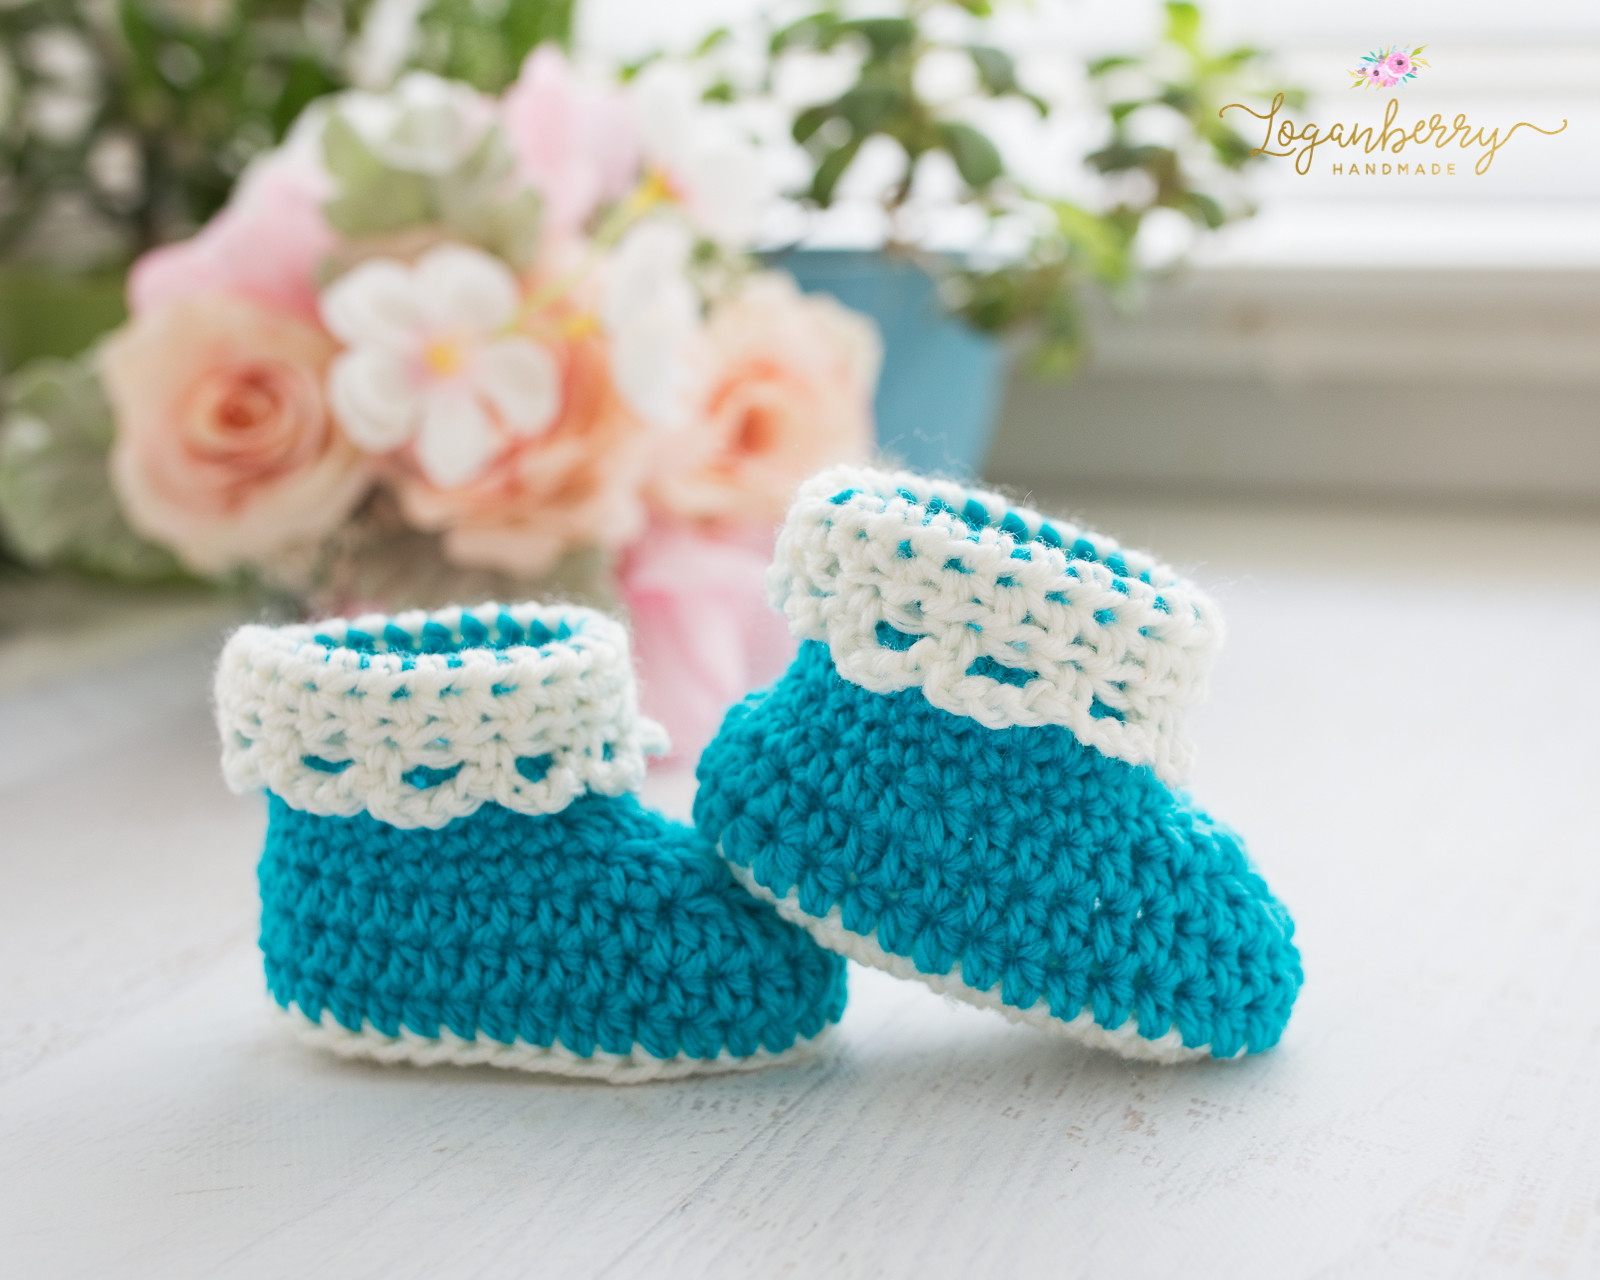 Free Crochet Baby Booties Elegant Lace Trim Baby Booties – Free Crochet Pattern Loganberry Of Wonderful 49 Photos Free Crochet Baby Booties